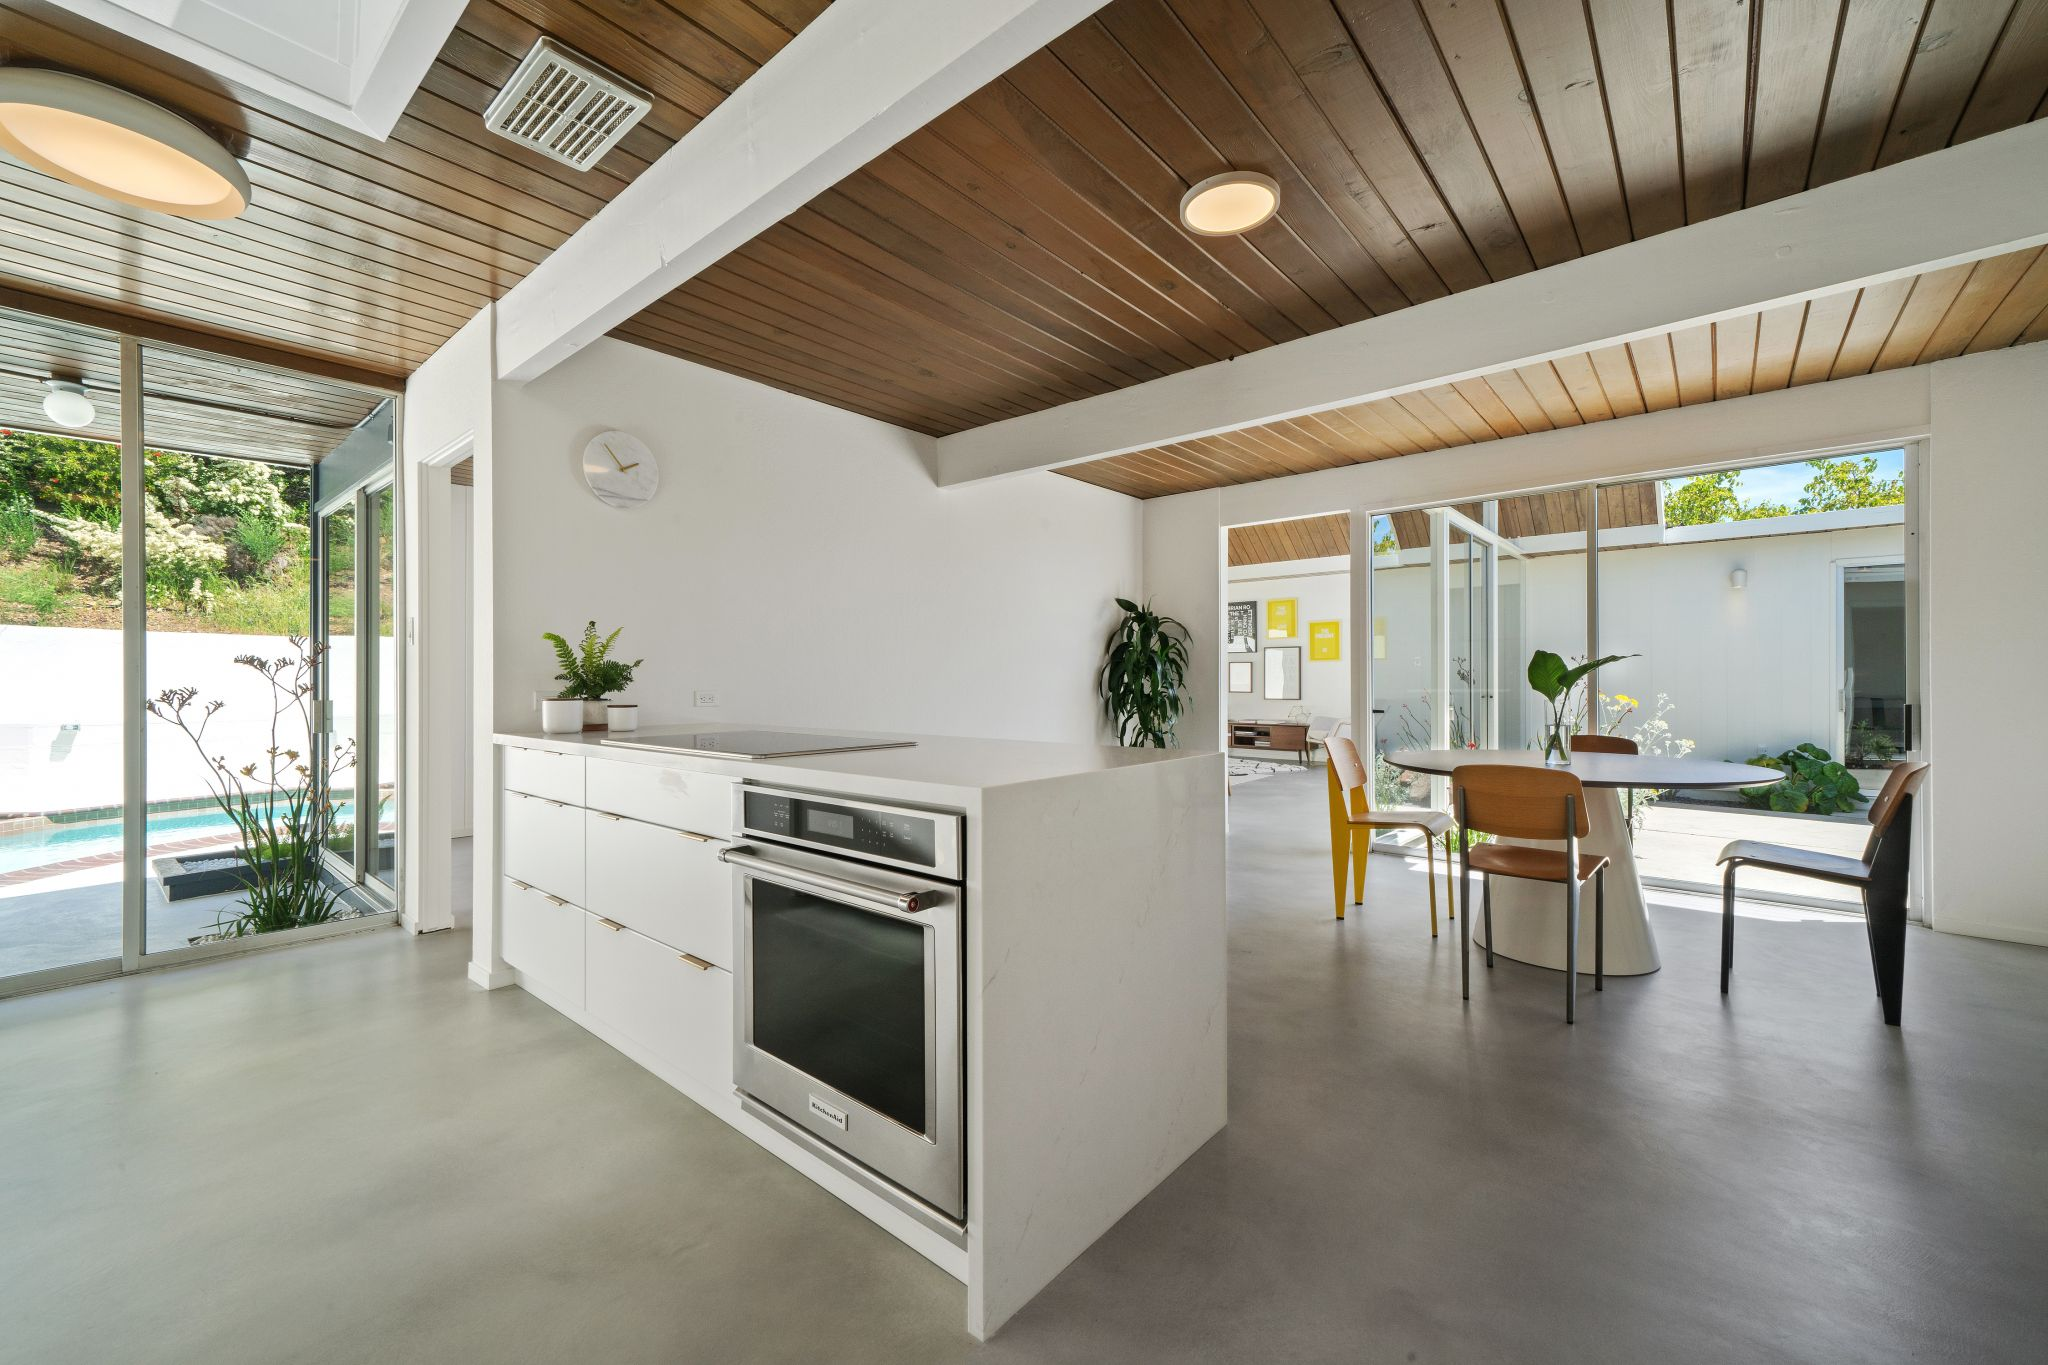 Unlike many 1960s homes, the kitchen here is totally open, flowing from one room to the next and from inside to outside.